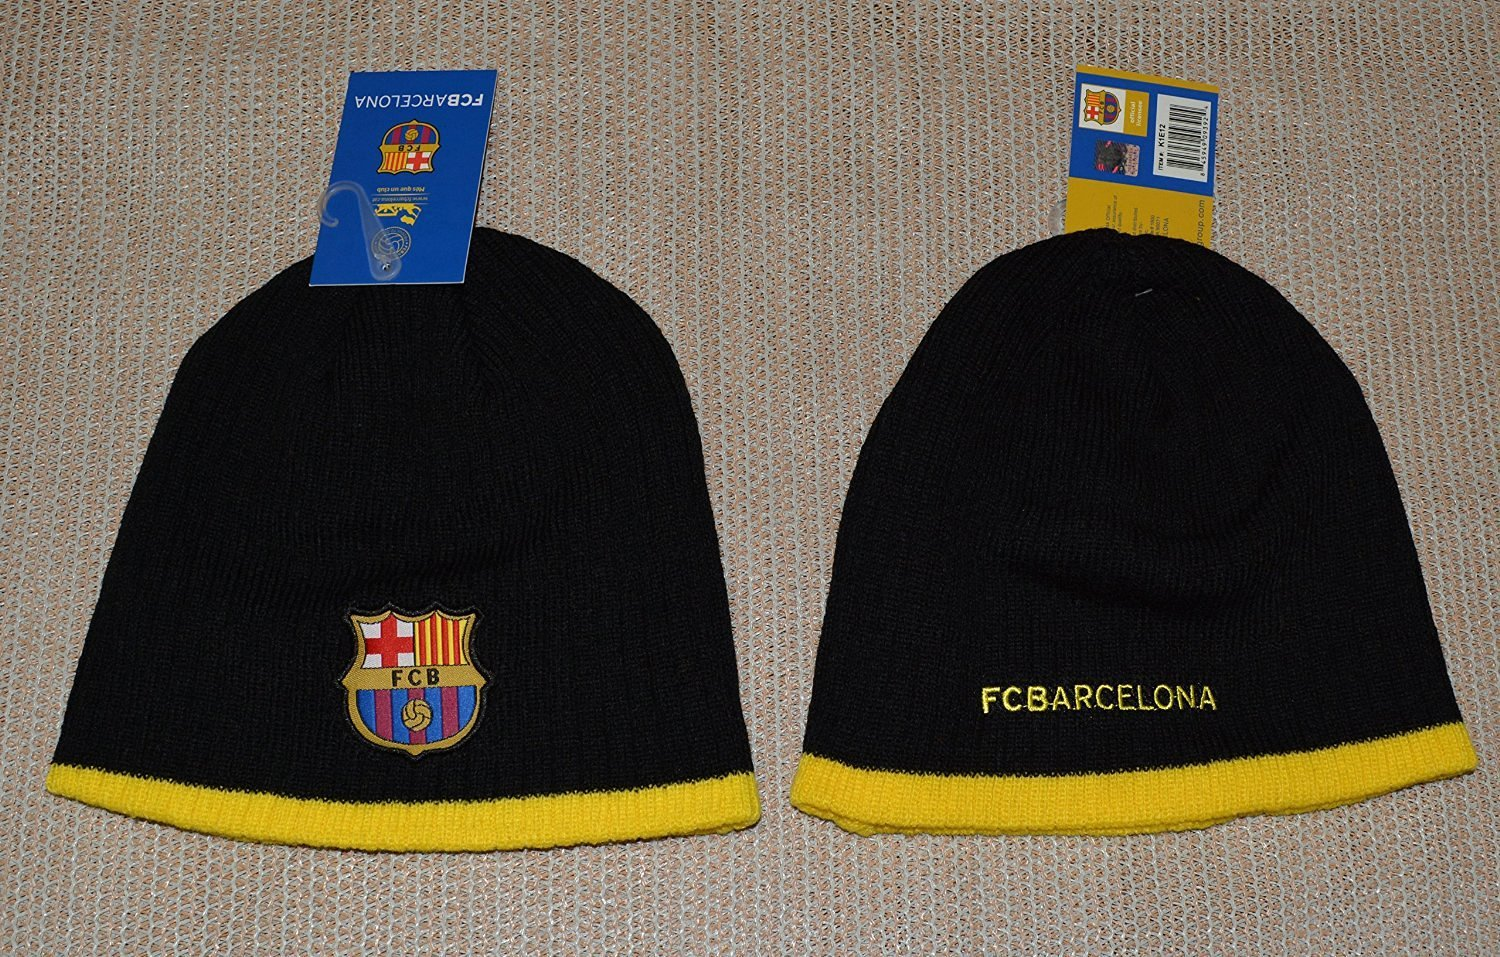 64f7ecdfa8a Fc Barcelona Beanie Soccer New ! 2014-2015 Official Skull Cap Hat Winter  Authentic (